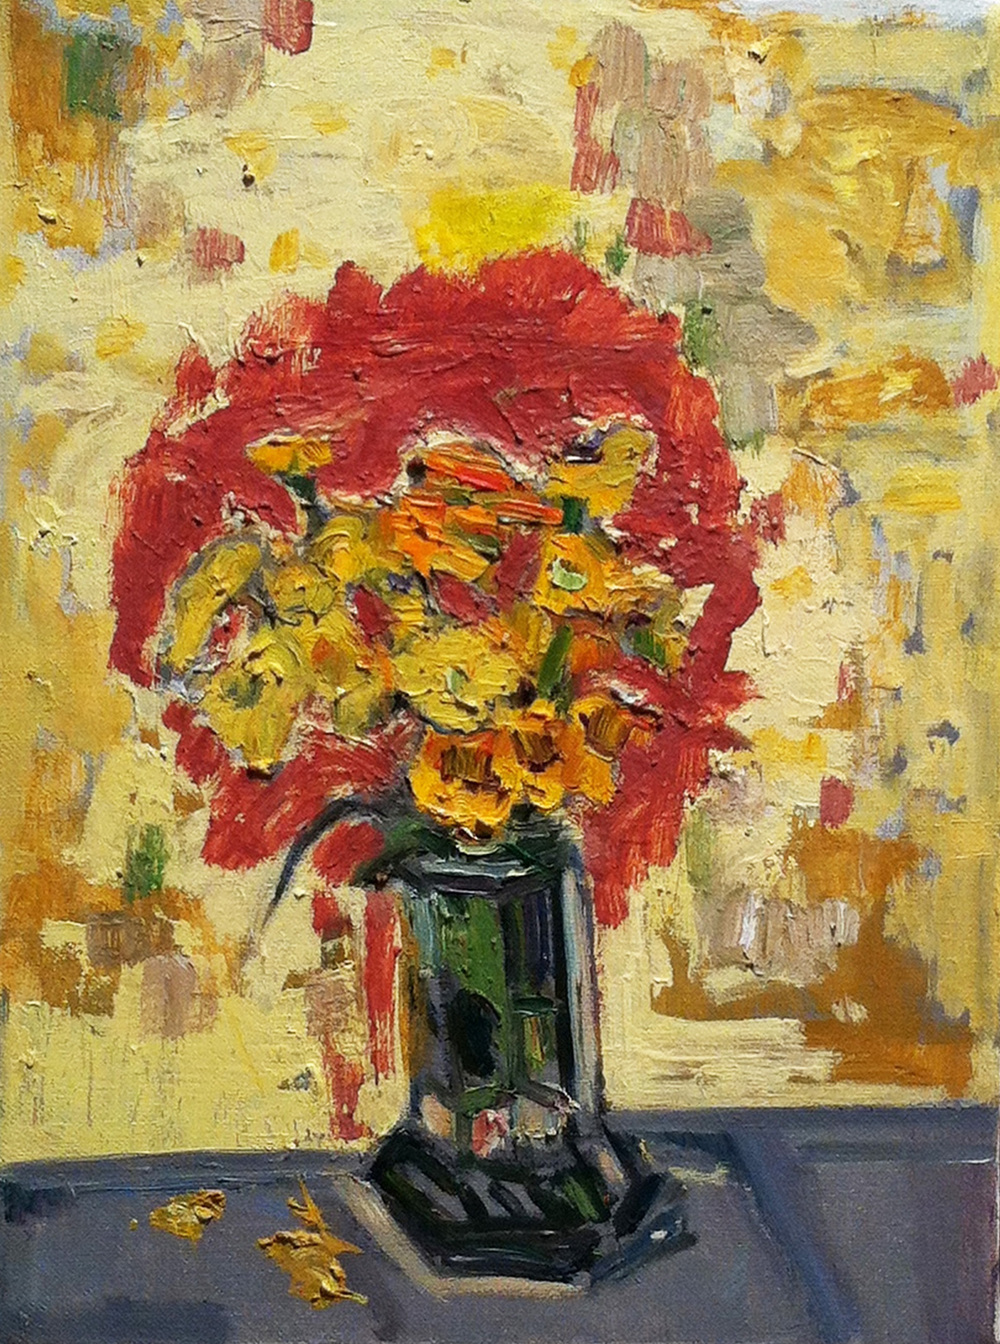 Mid-September Yellow,  1990 - 2001 oil on canvas, 12 x 9 inches